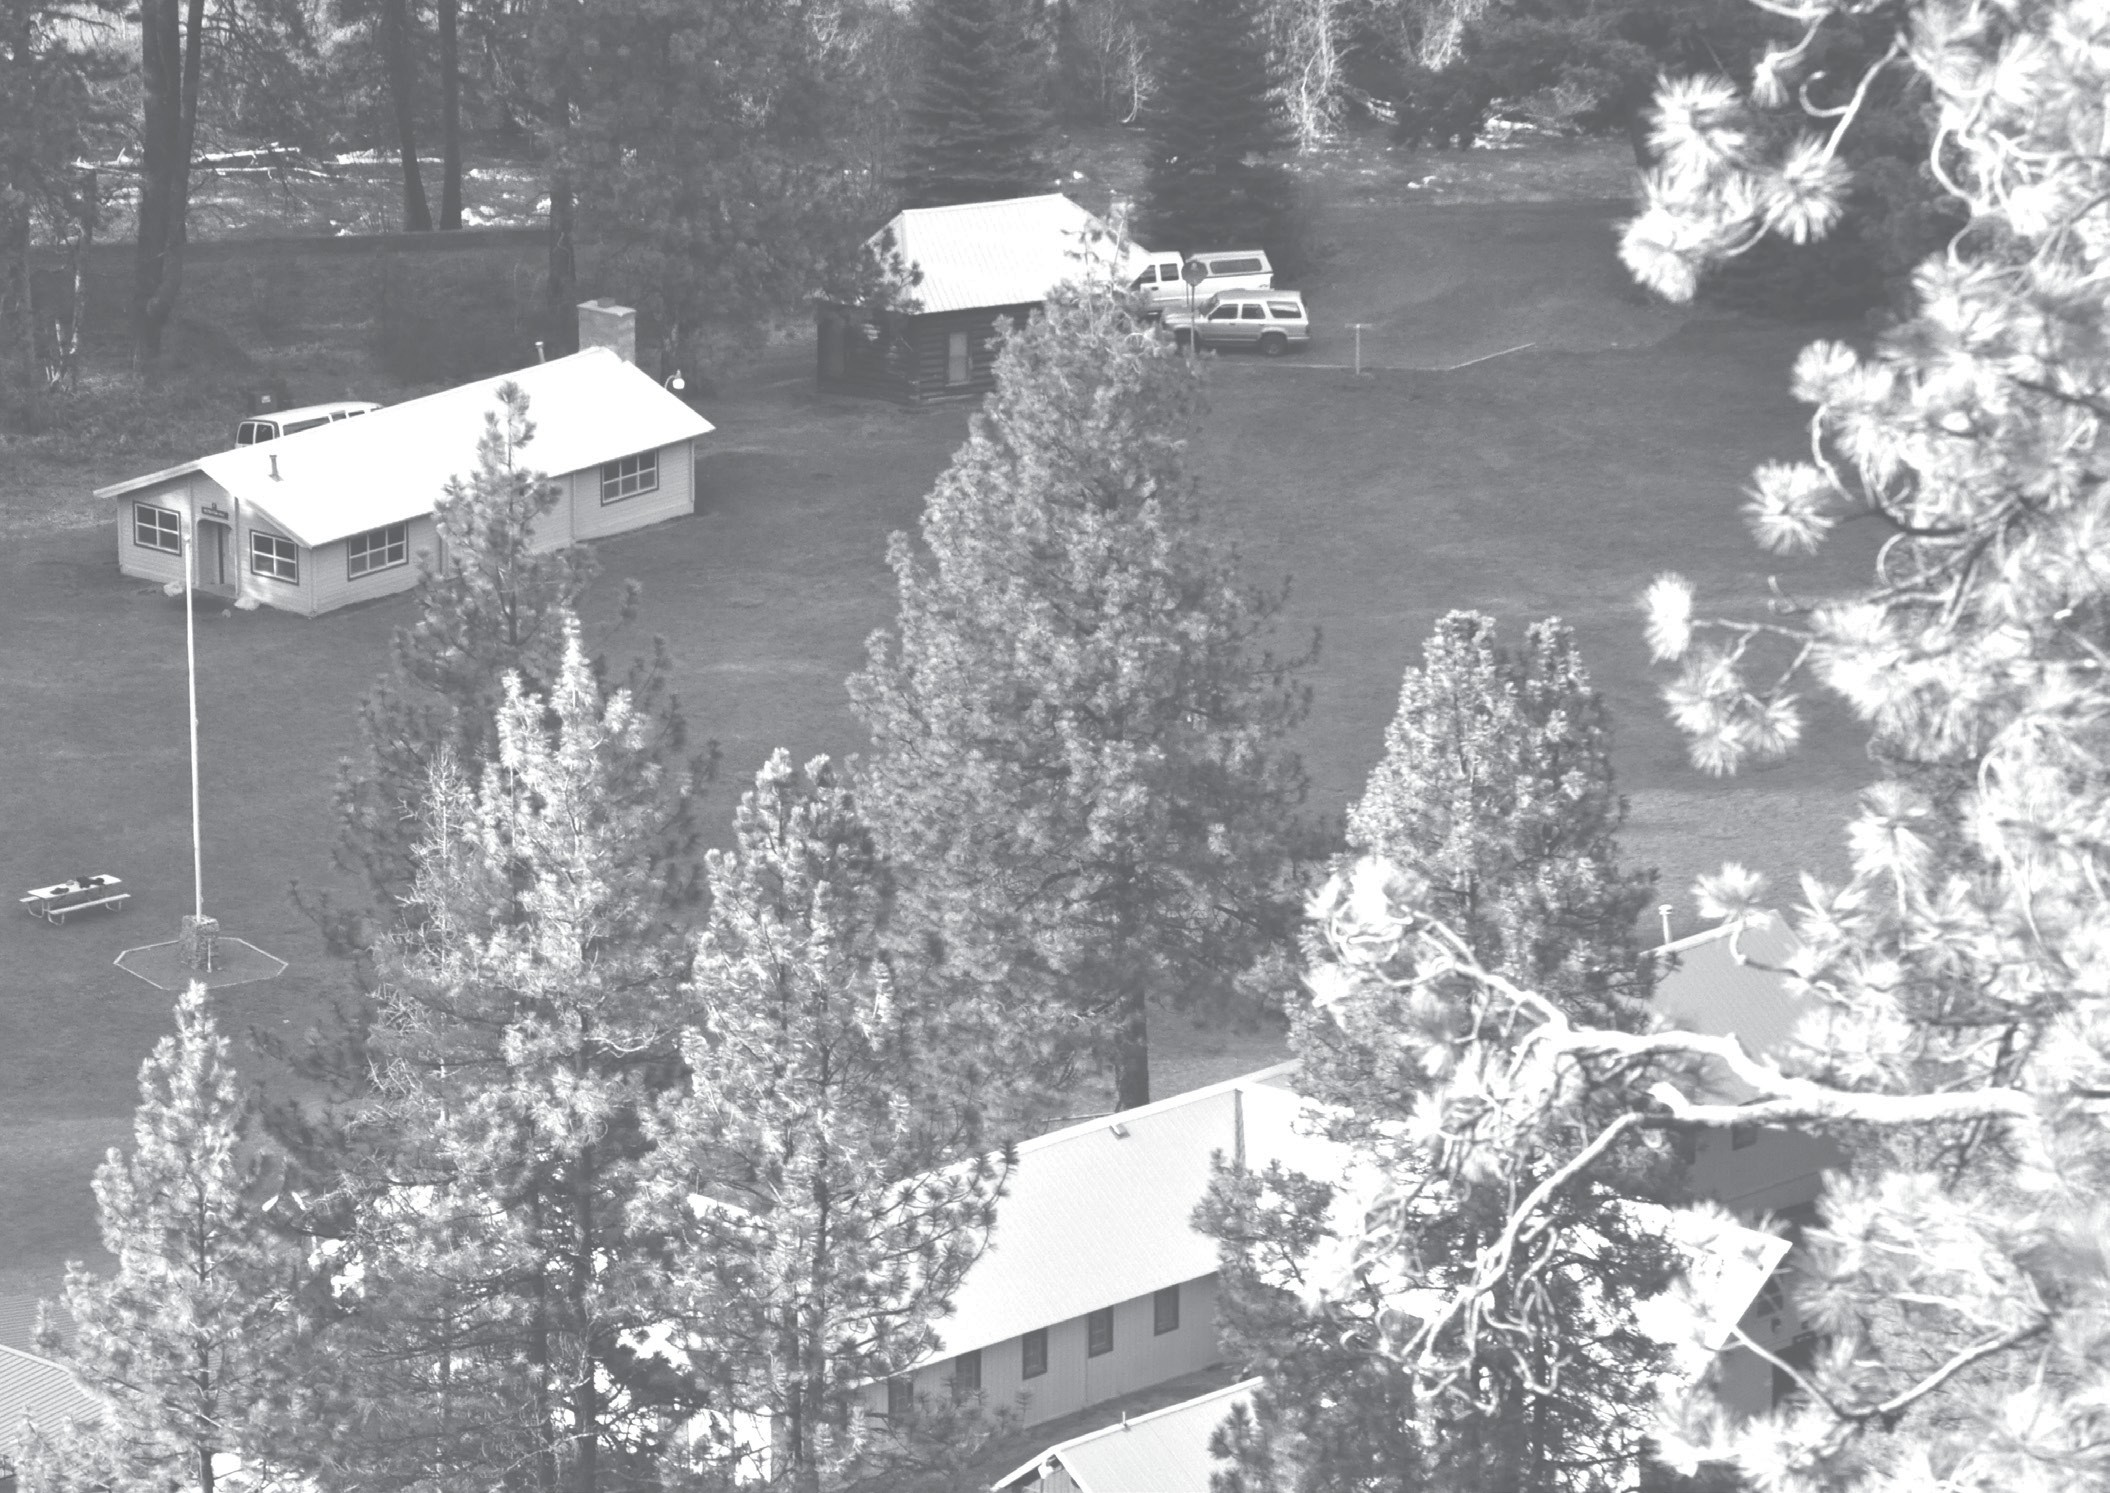 Camp Wooten: Open for Business - The Times